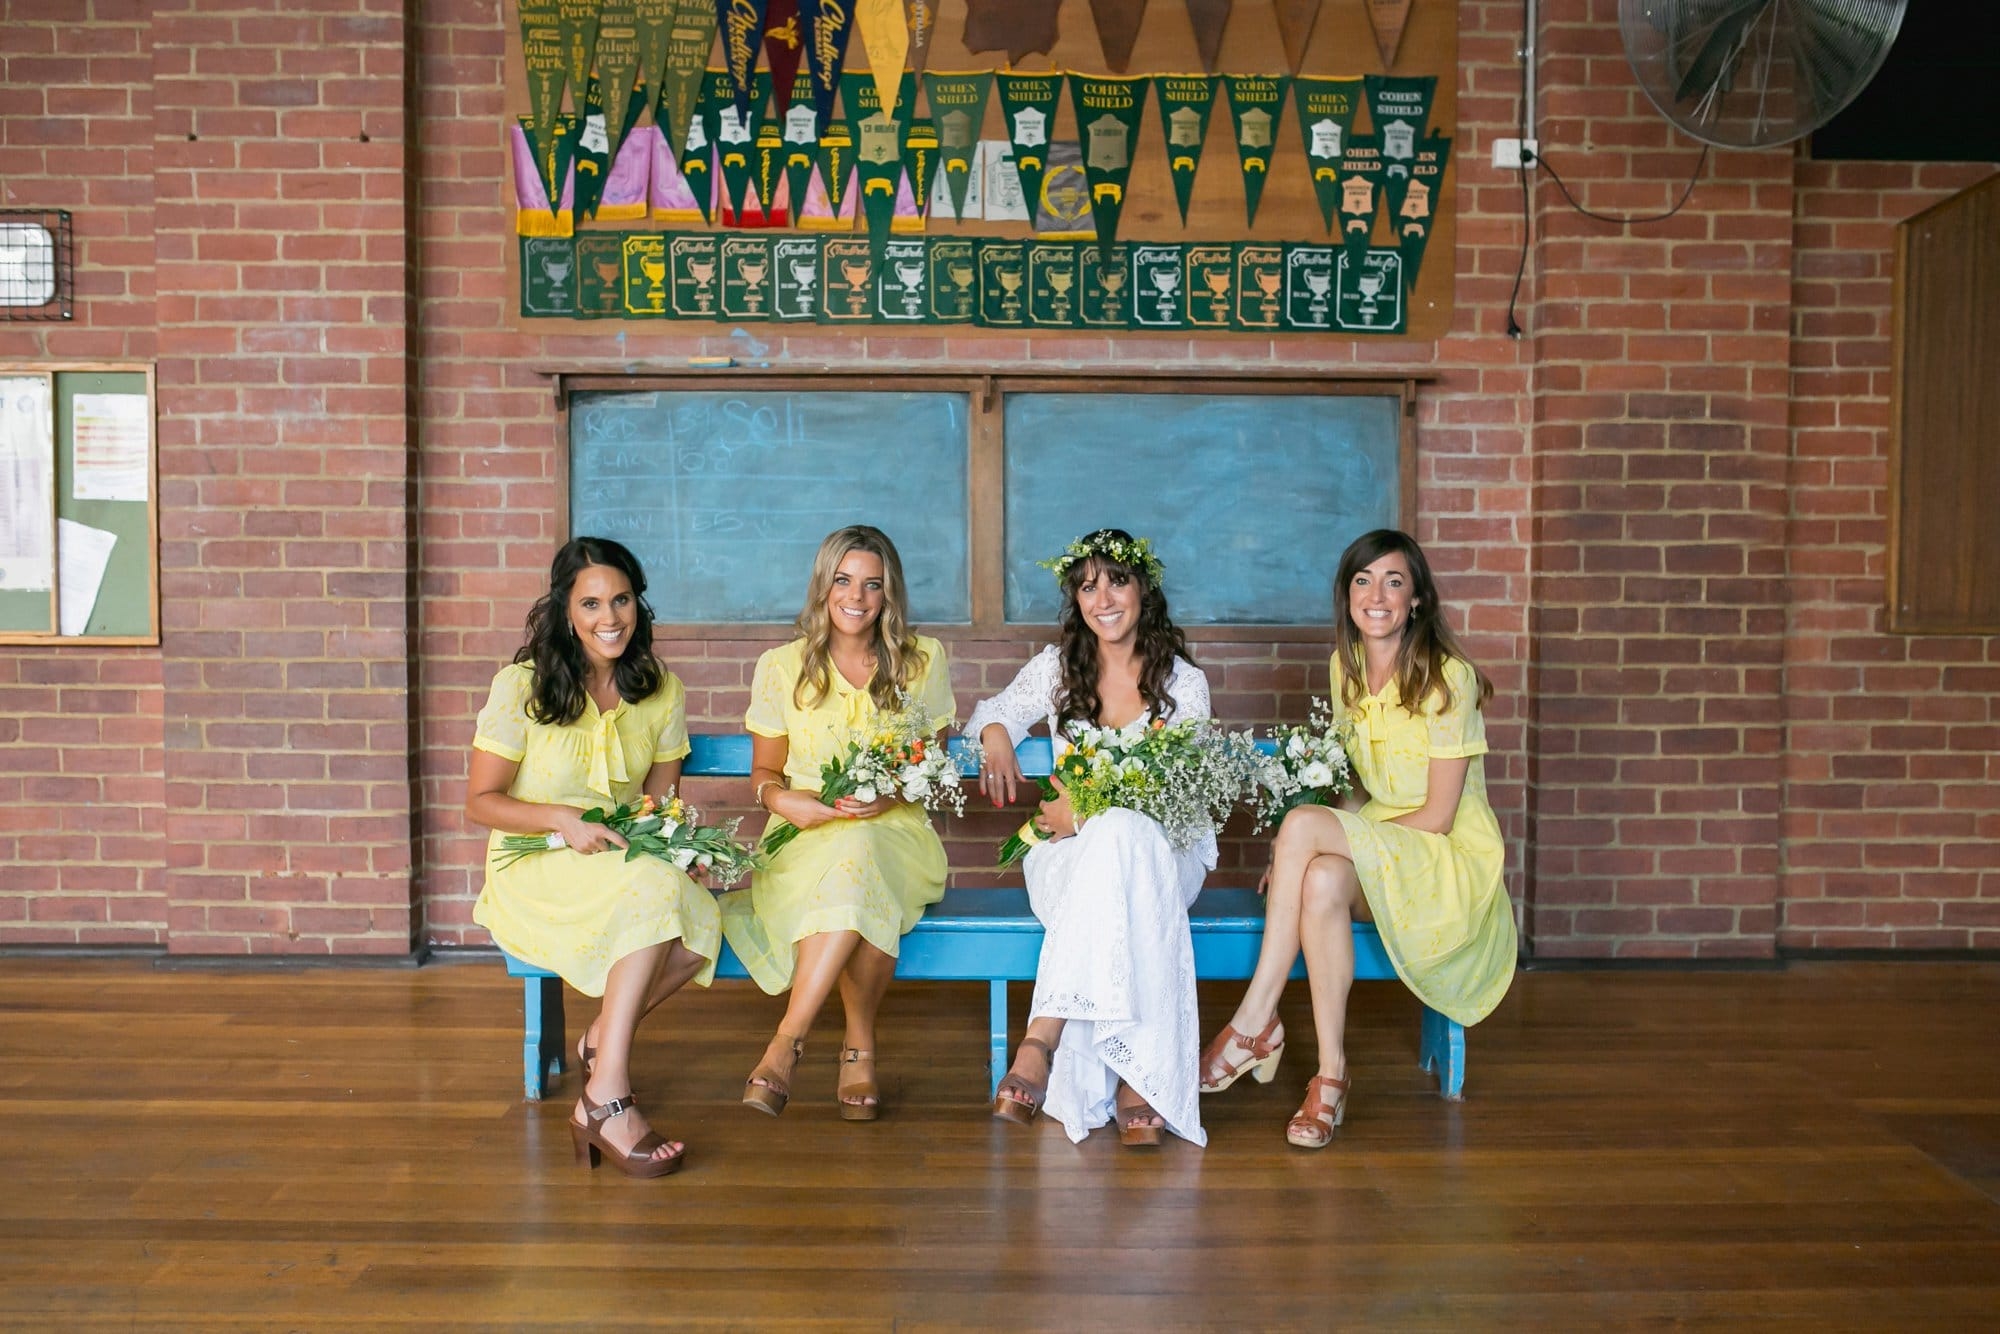 Melbourne_DIY_Scout_Hall_Cafe_Wedding_Photographer_36